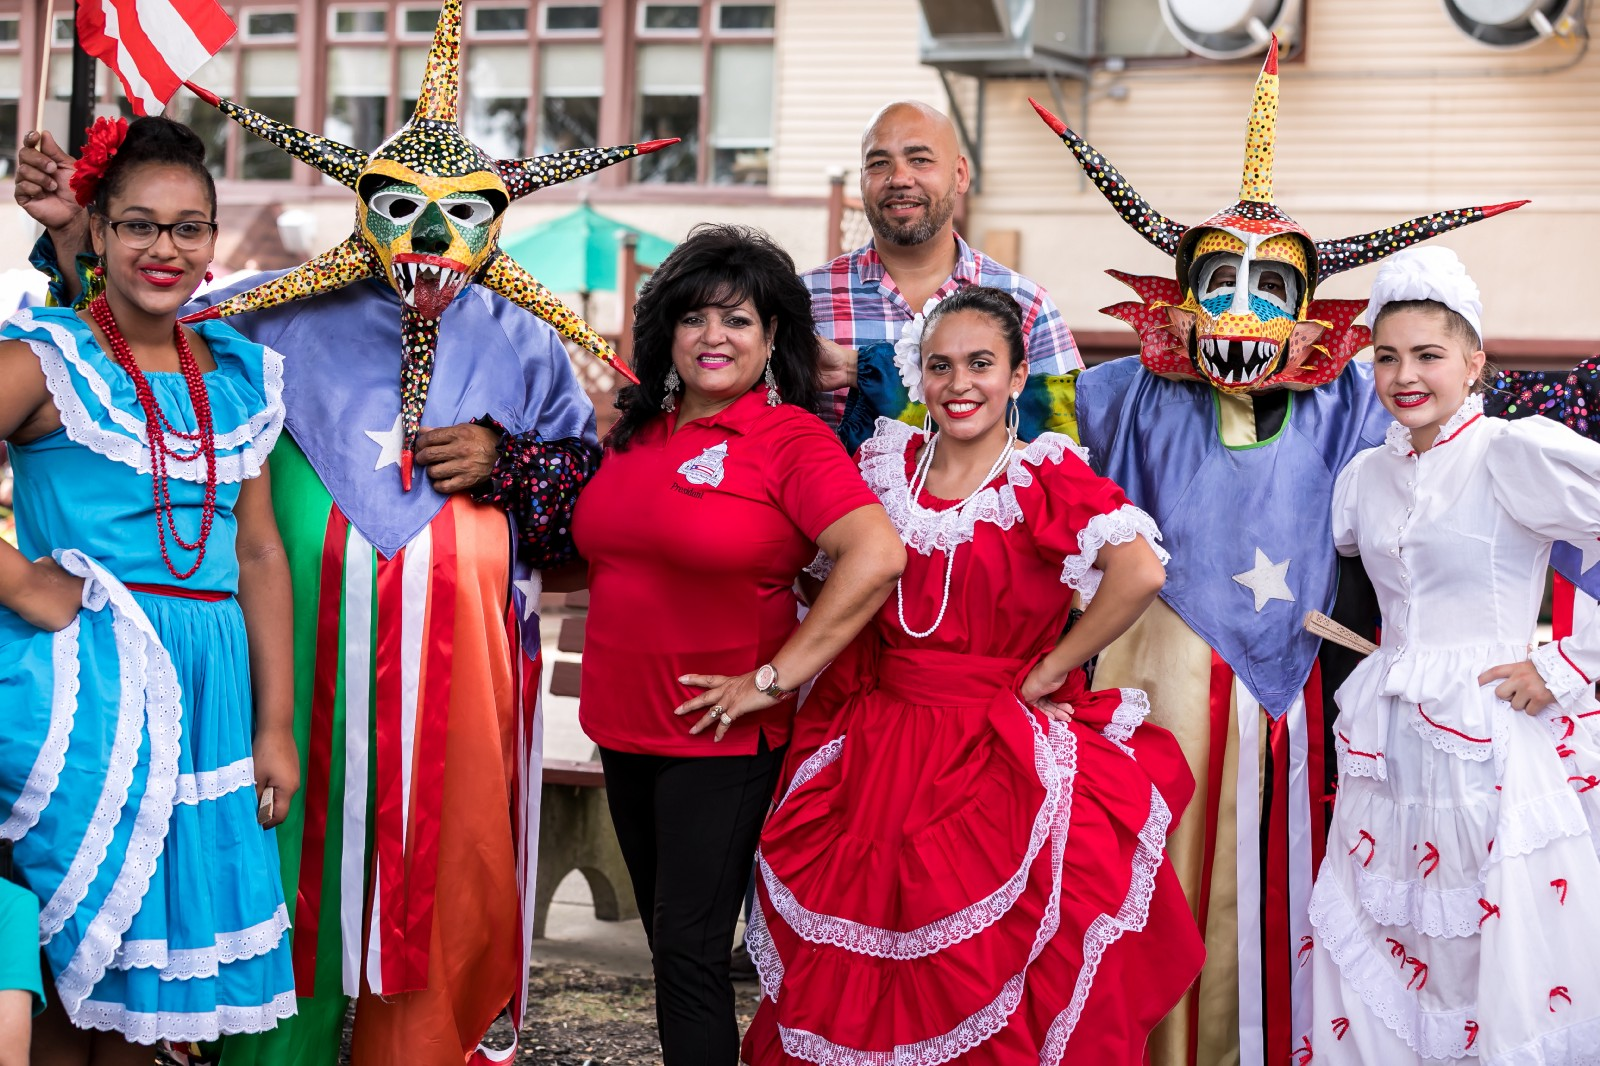 On July 22 An Estimated 7000 People Came Together Along The Waterfront To Celebrate Culture And Traditions During Annual Puerto Rican